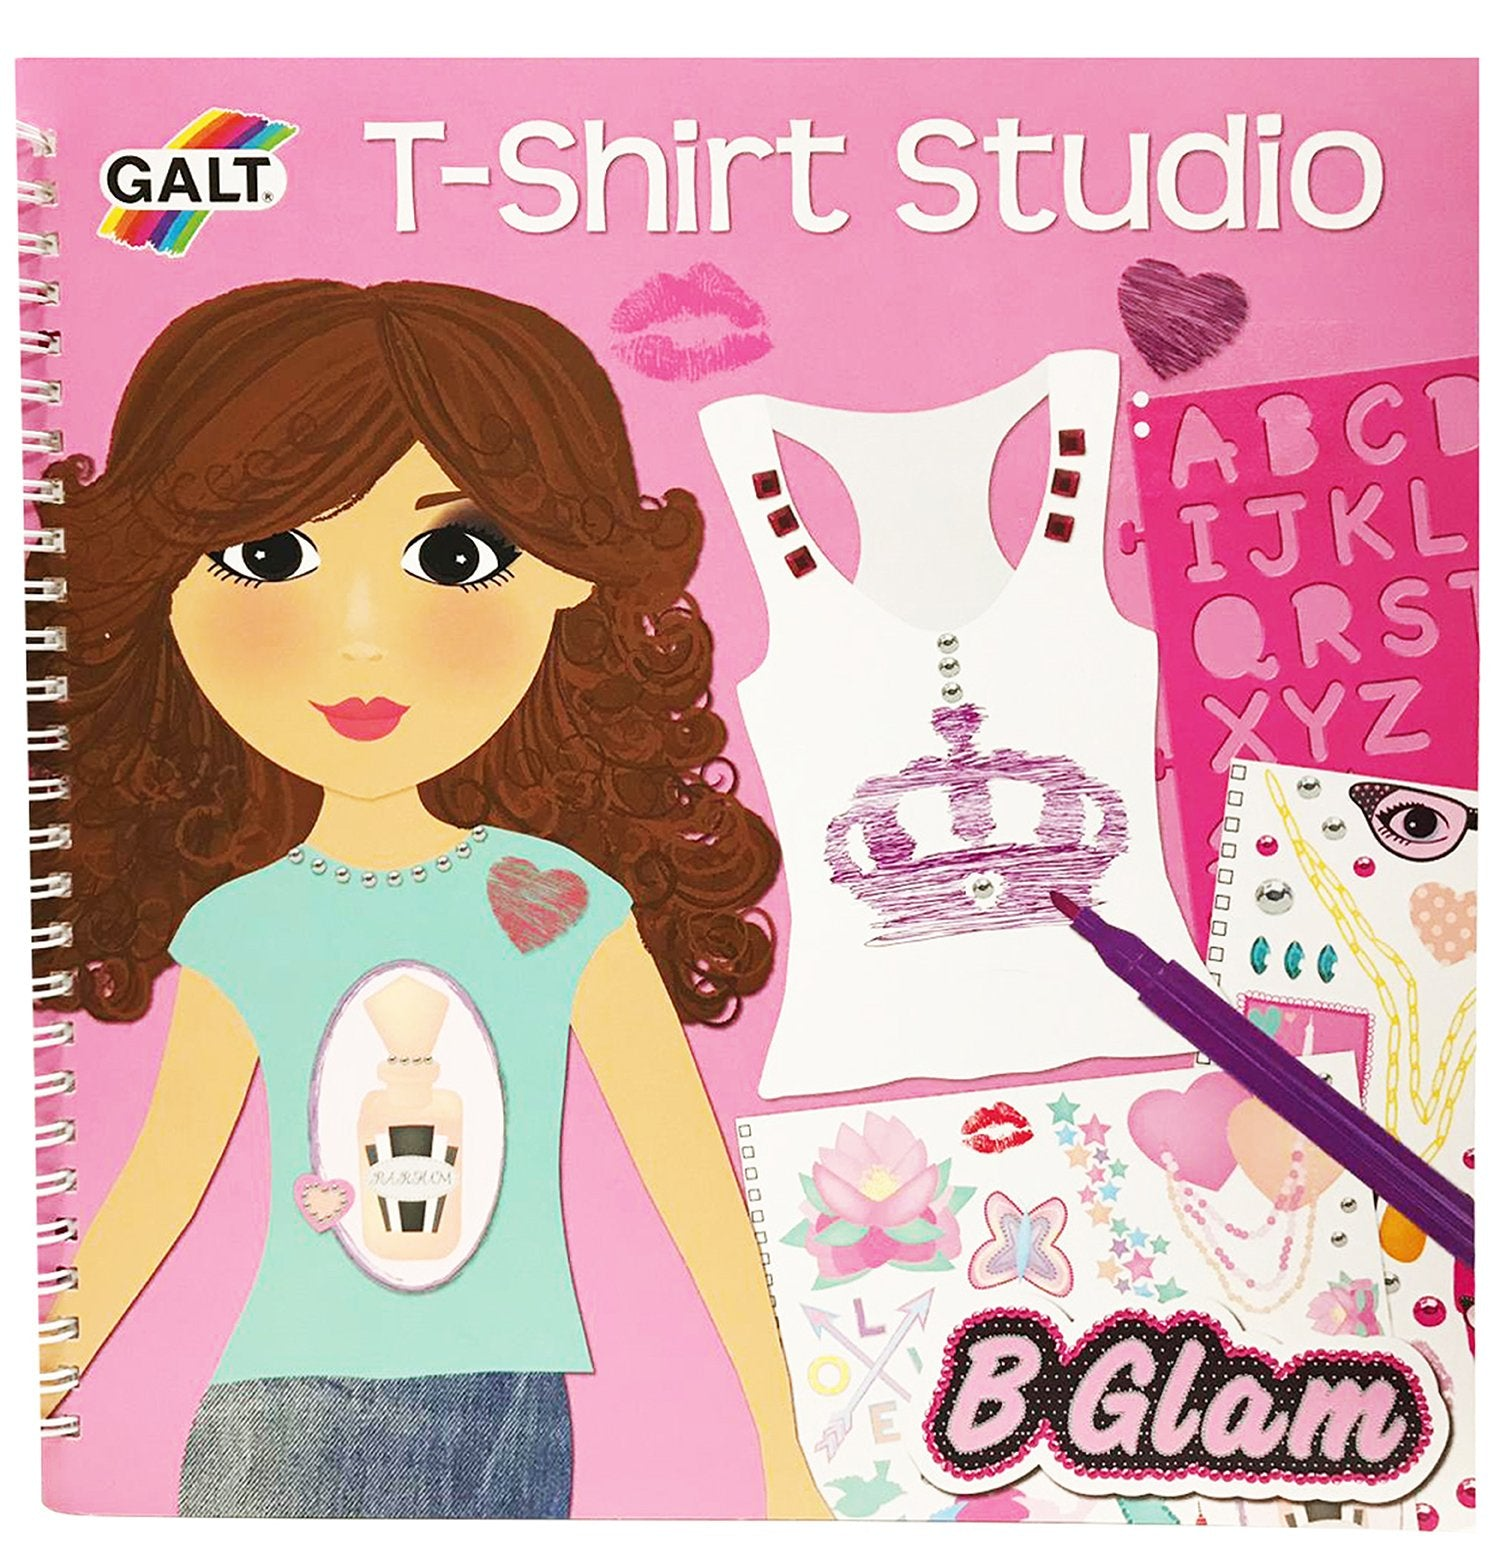 T-shirt Studio - Galt